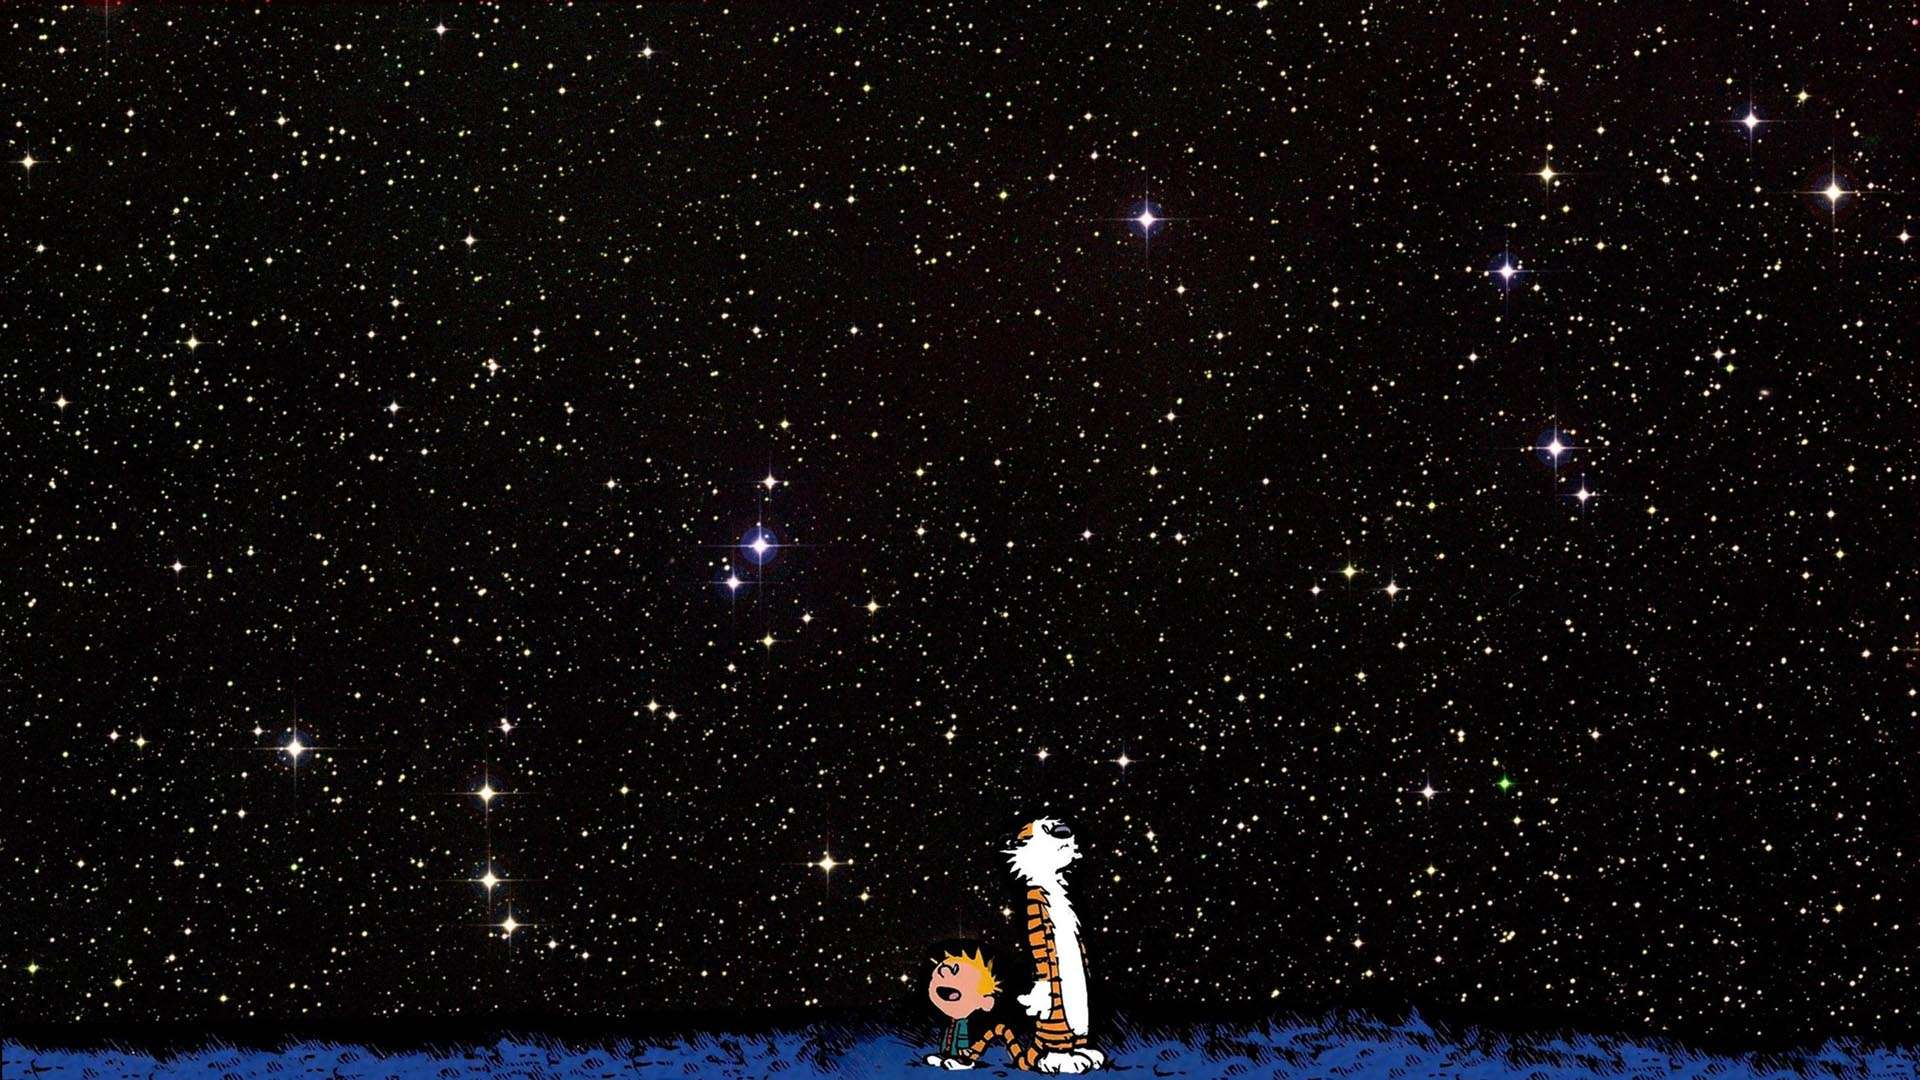 Calvin-and-Hobbes-Starfield-HD-»-FullHDWpp-Full-HD-1920x1080-wallpaper-wp3403692